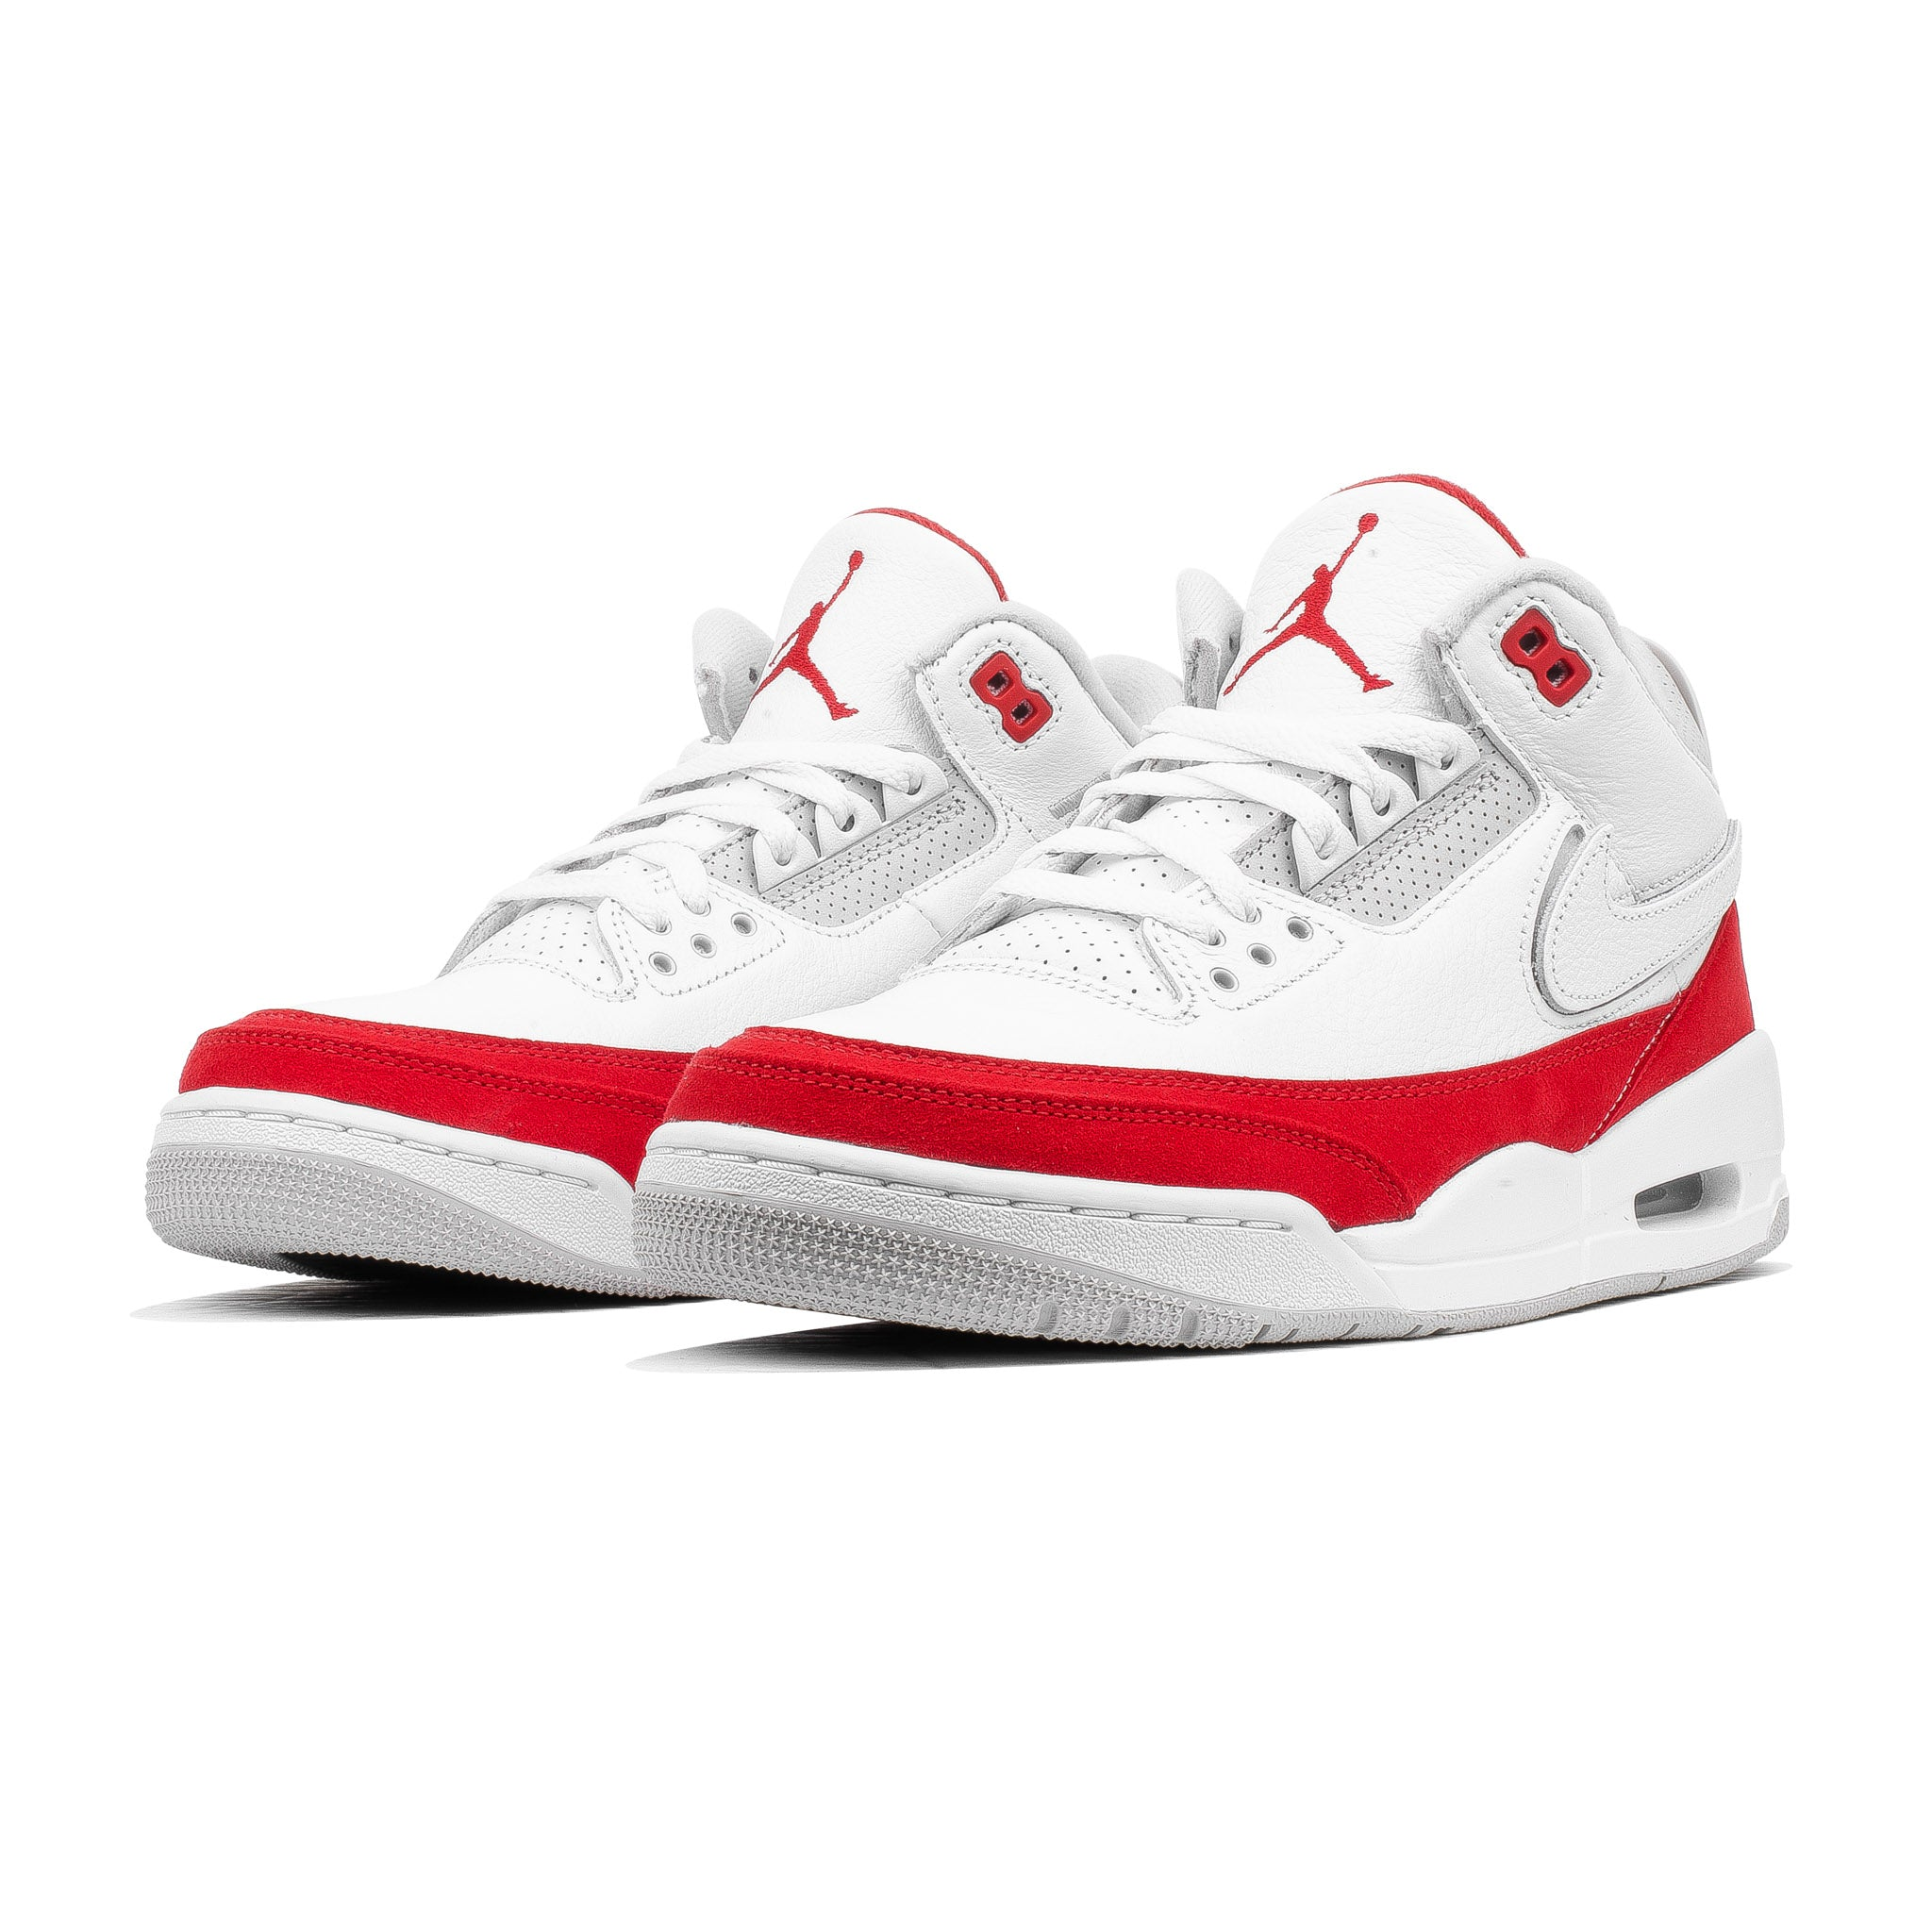 e1d803dadc6 Air Jordan 3 Retro TH SP CJ0939-100 White University Red – Capsule ...